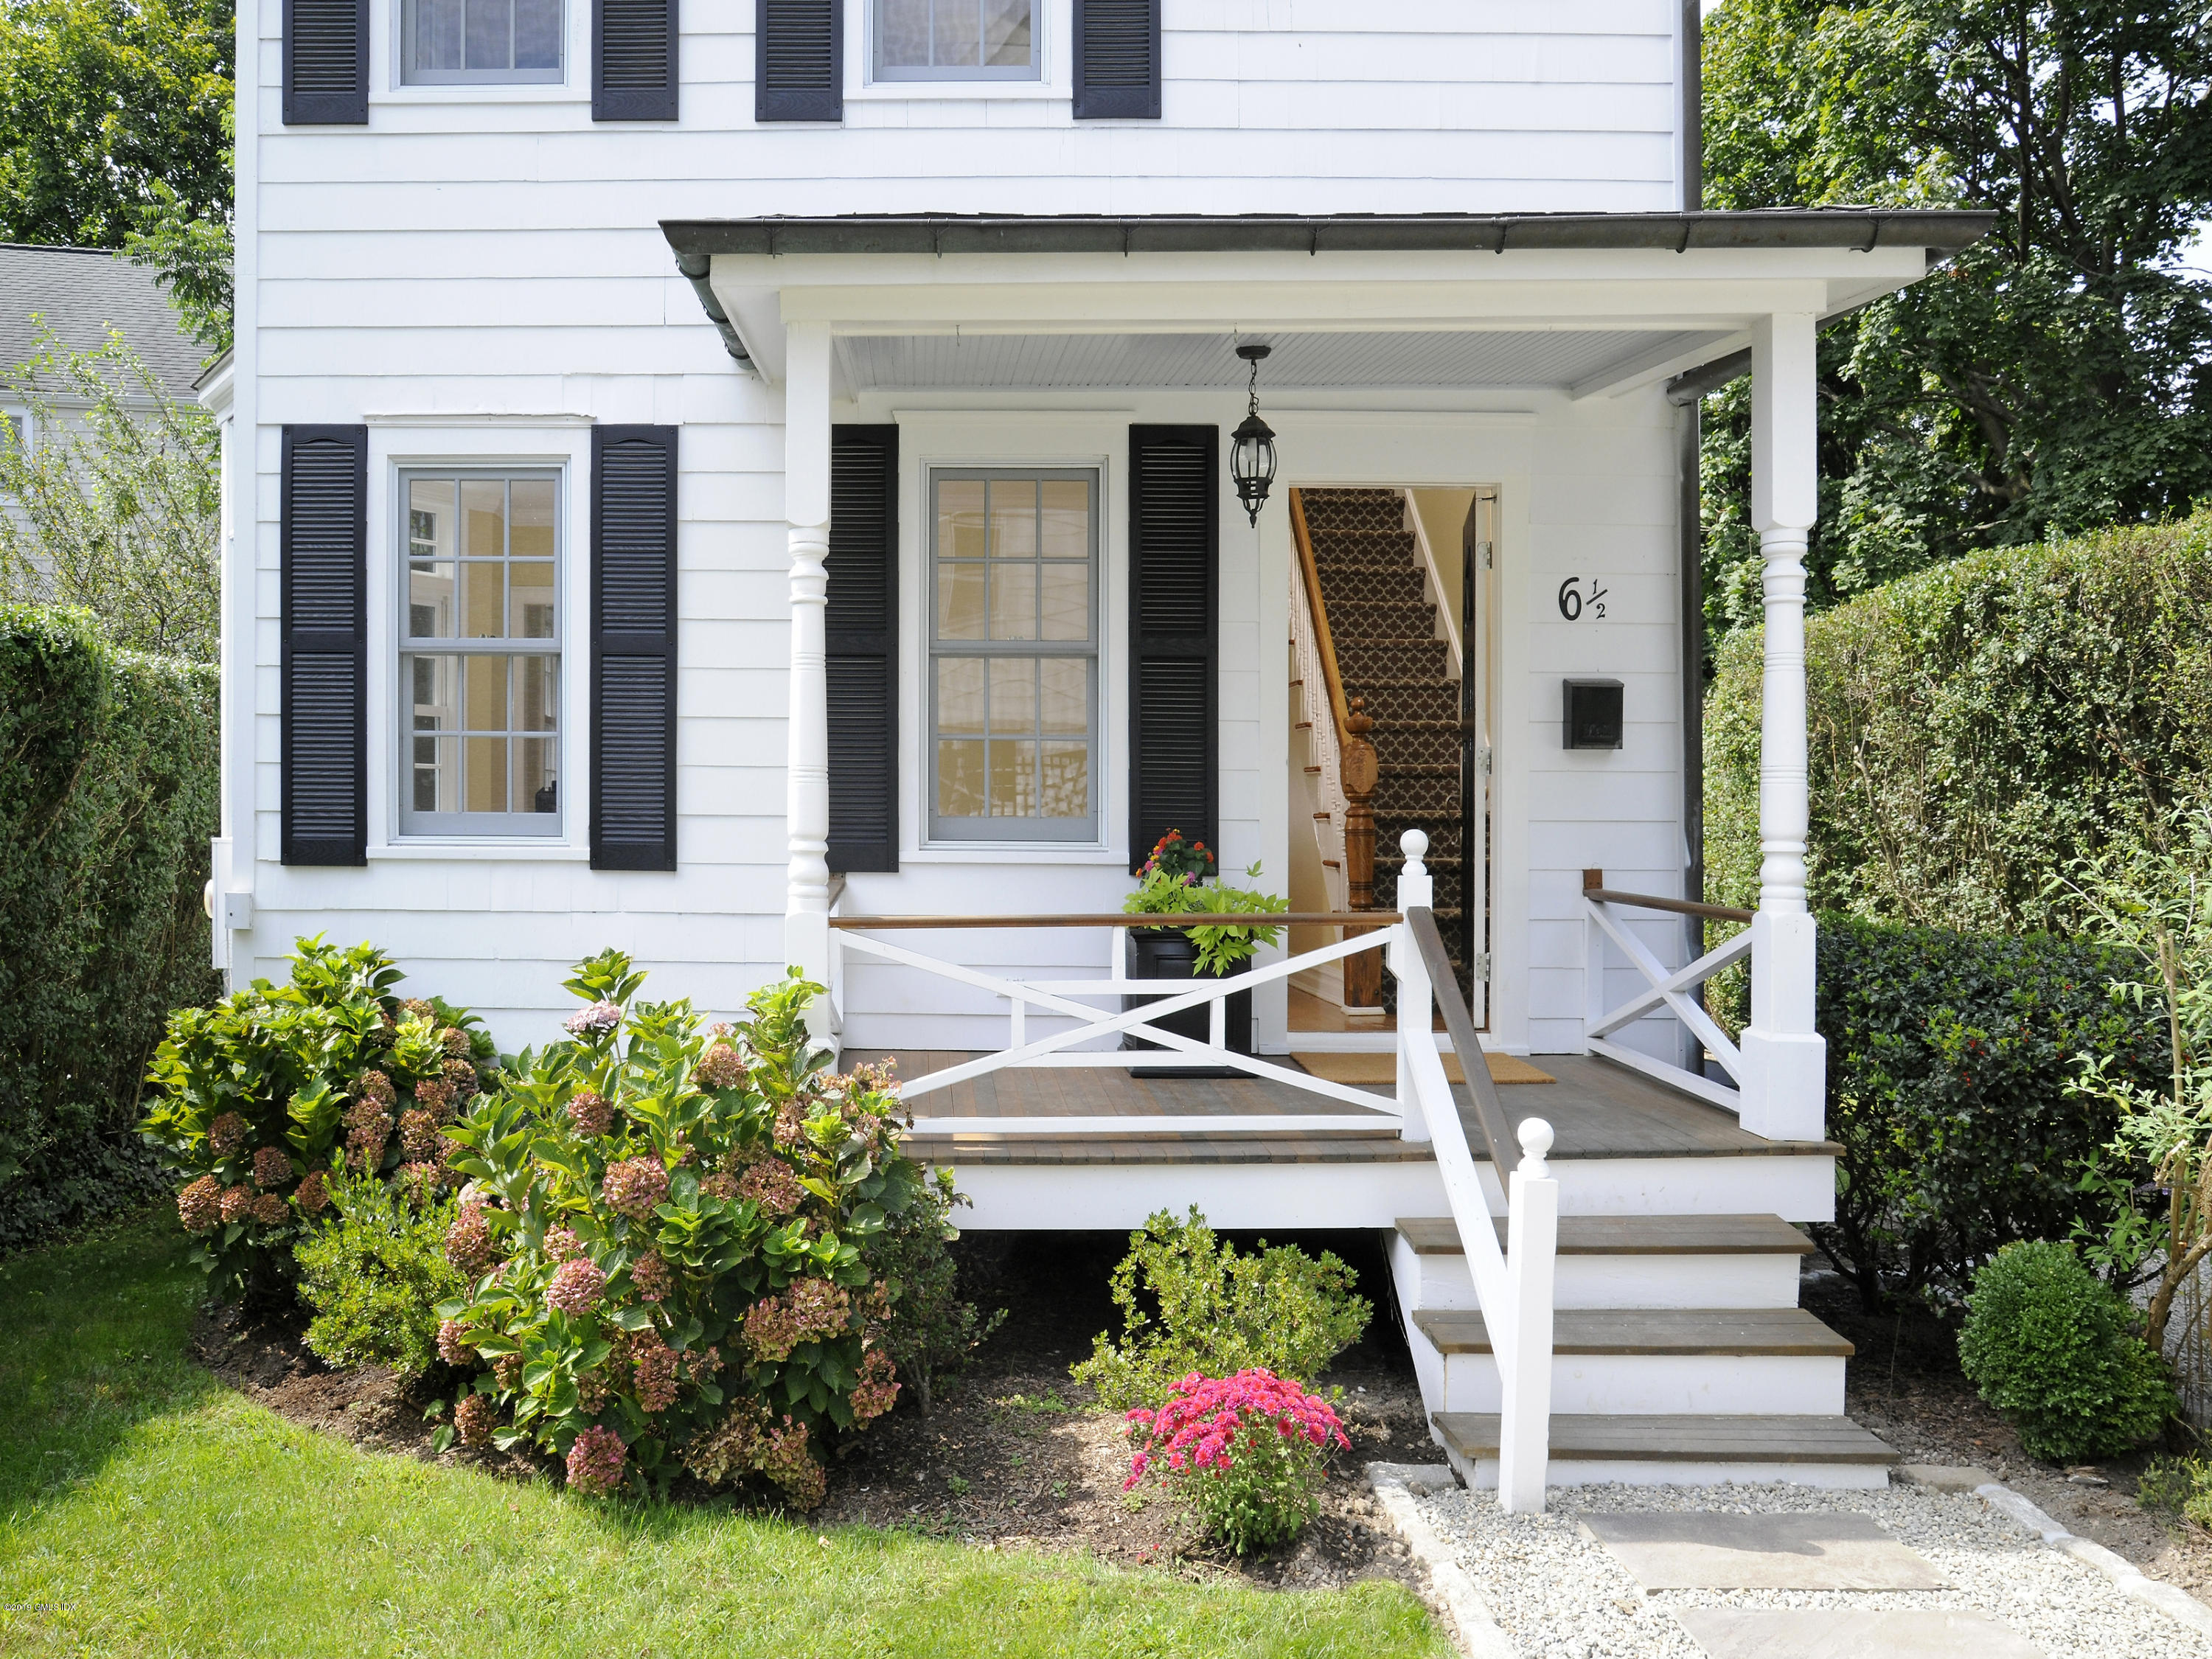 6 Farley Street,Greenwich,Connecticut 06830,2 Bedrooms Bedrooms,2 BathroomsBathrooms,Single family,Farley,107858